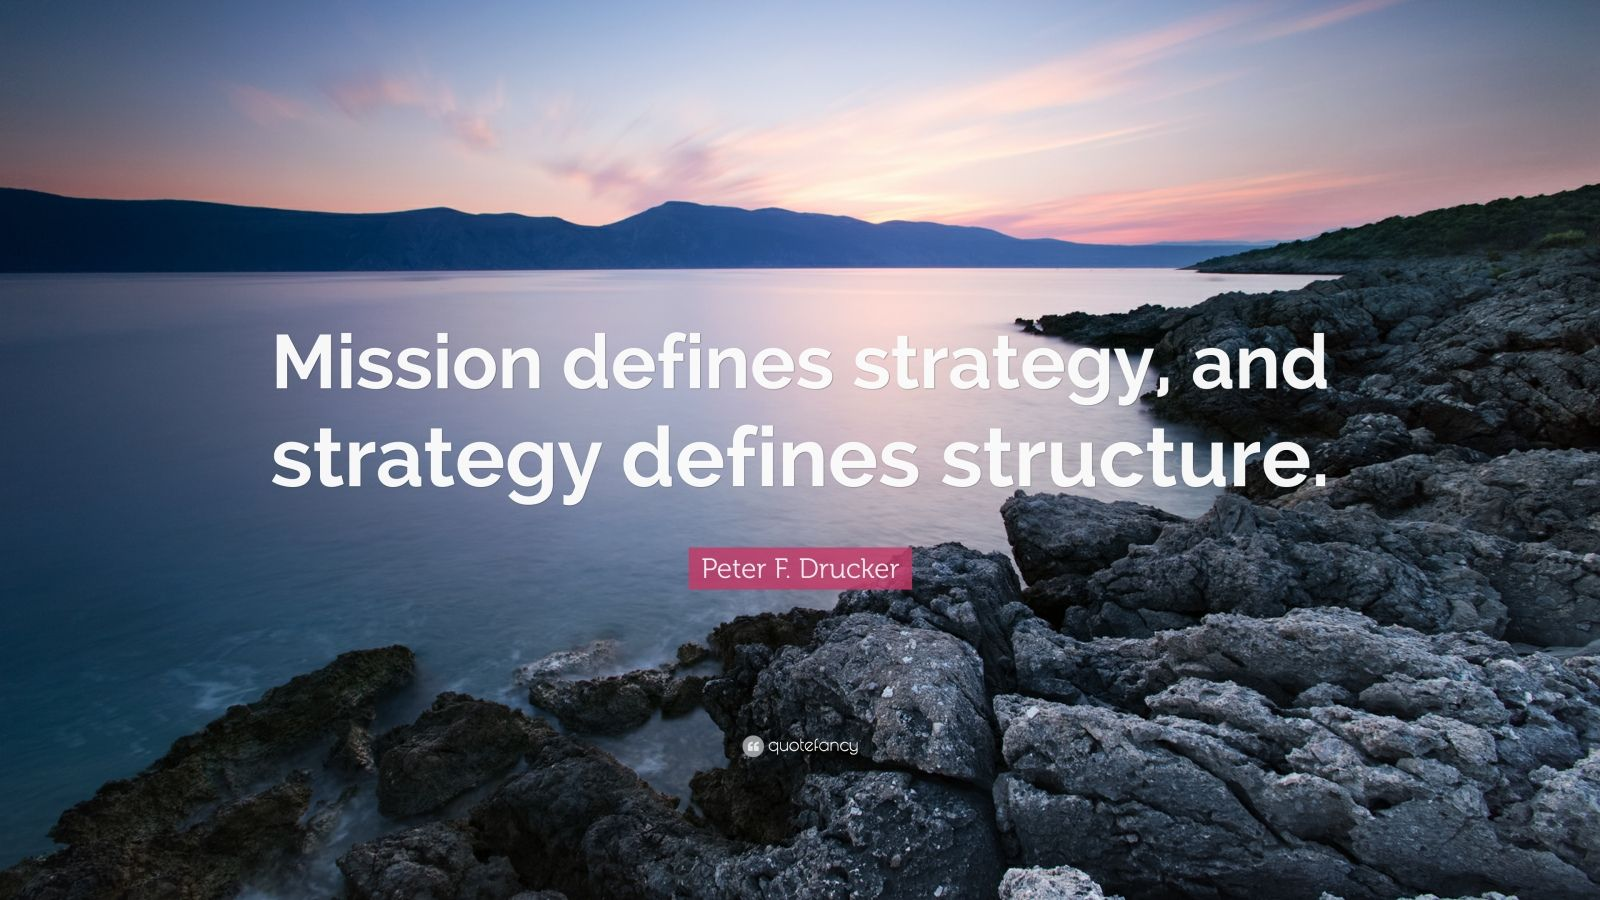 """Peter F. Drucker Quote: """"Mission defines strategy, and strategy defines structure."""""""